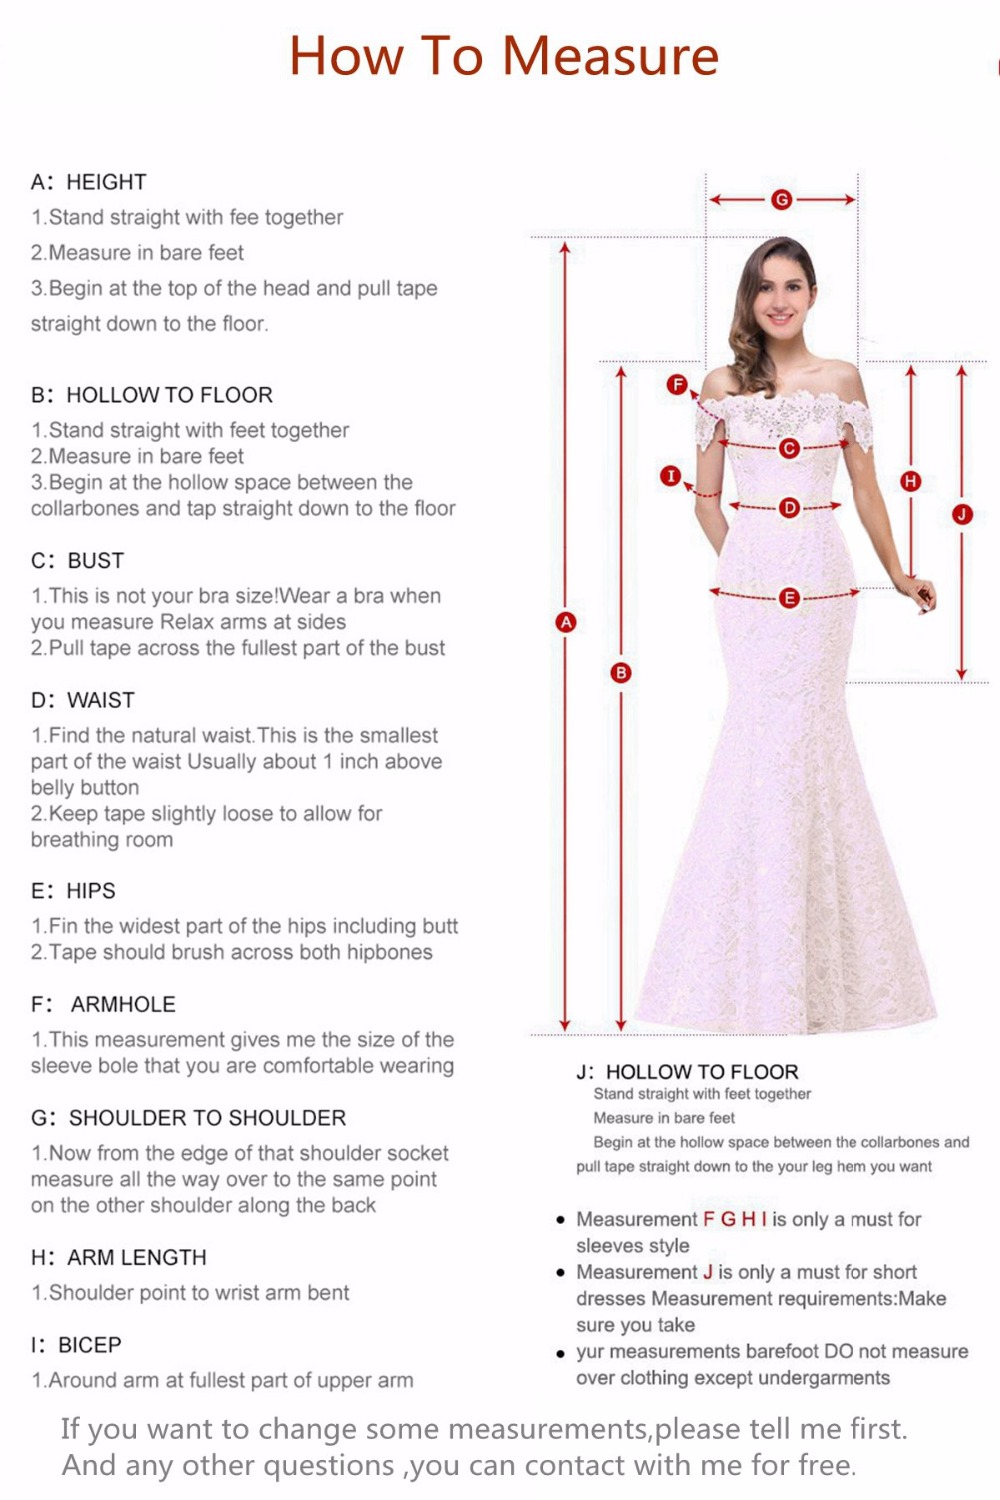 2019 New Sheer High Neck Lace Wedding Dresses Long Sleeves Princess Formal Bridal Gowns with Keyhole Back - 4